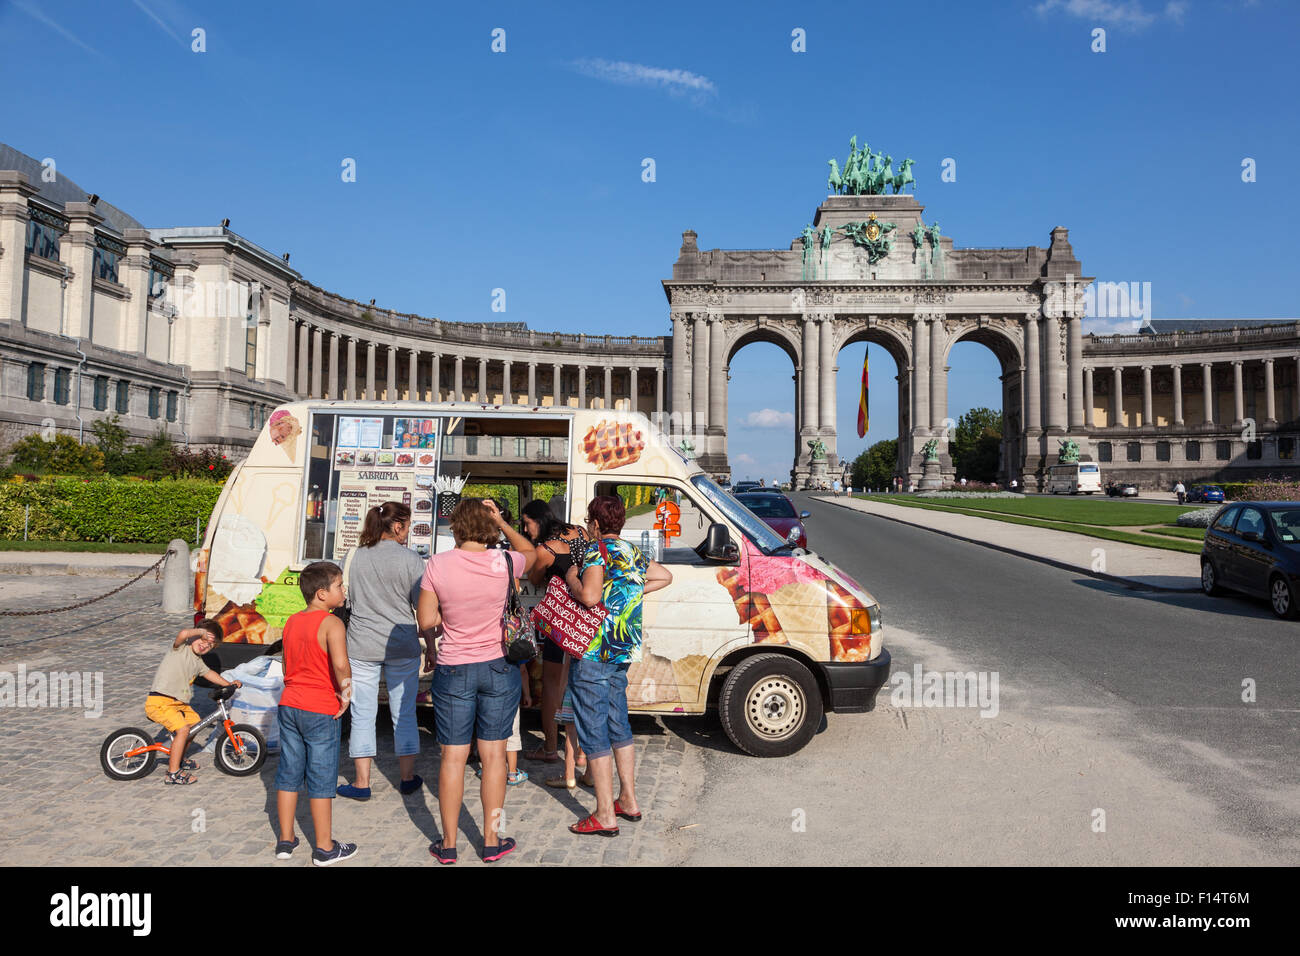 Tourists queue for ice cream at the Arcade du Cinquantenaire in Brussels. August 21, 2015 in Brussels, Belgium Stock Photo